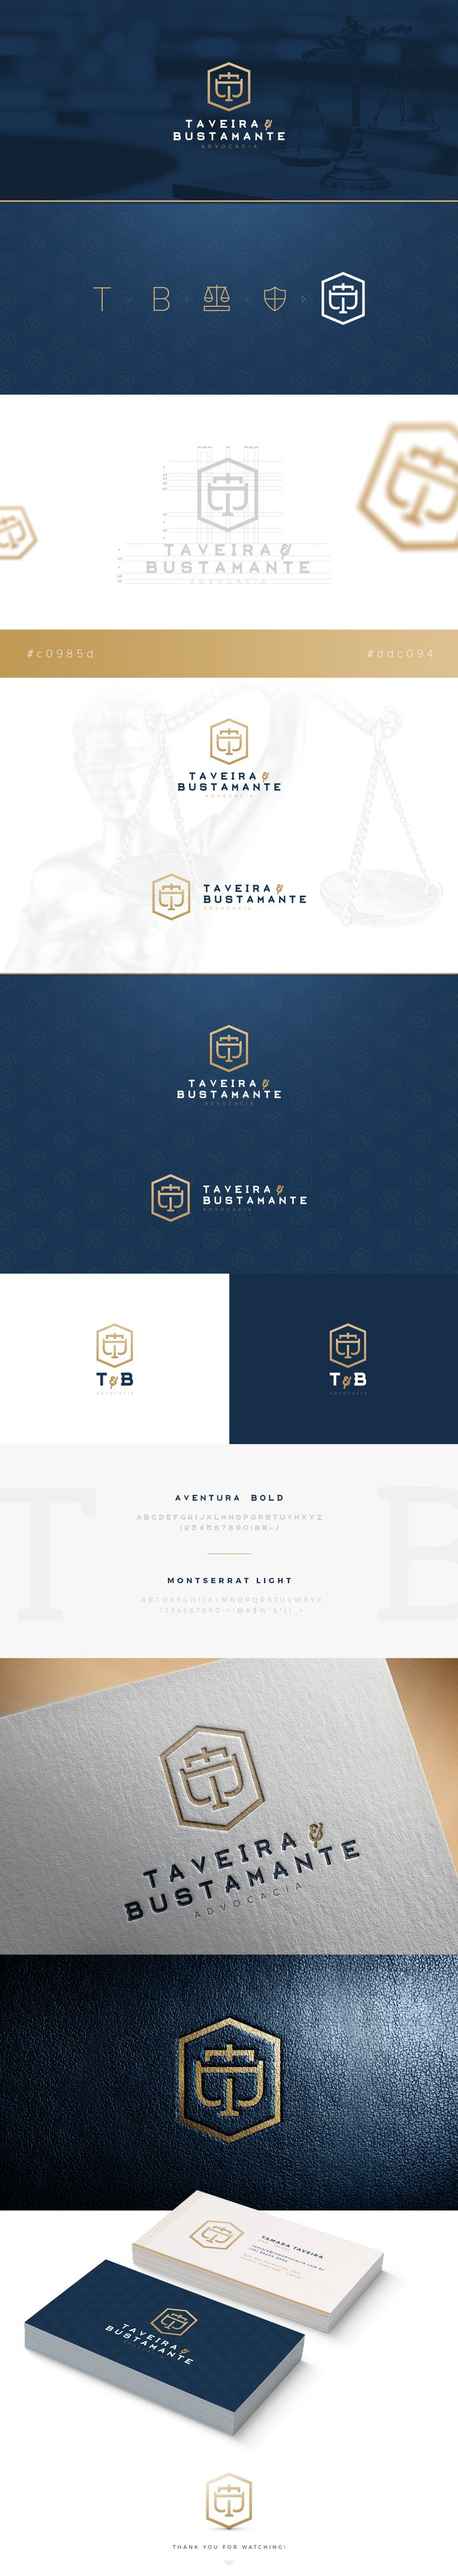 """Check out this @Behance project: """"Taveira e Bustamante Advocacia"""" https://www.behance.net/gallery/43158087/Taveira-e-Bustamante-Advocacia"""